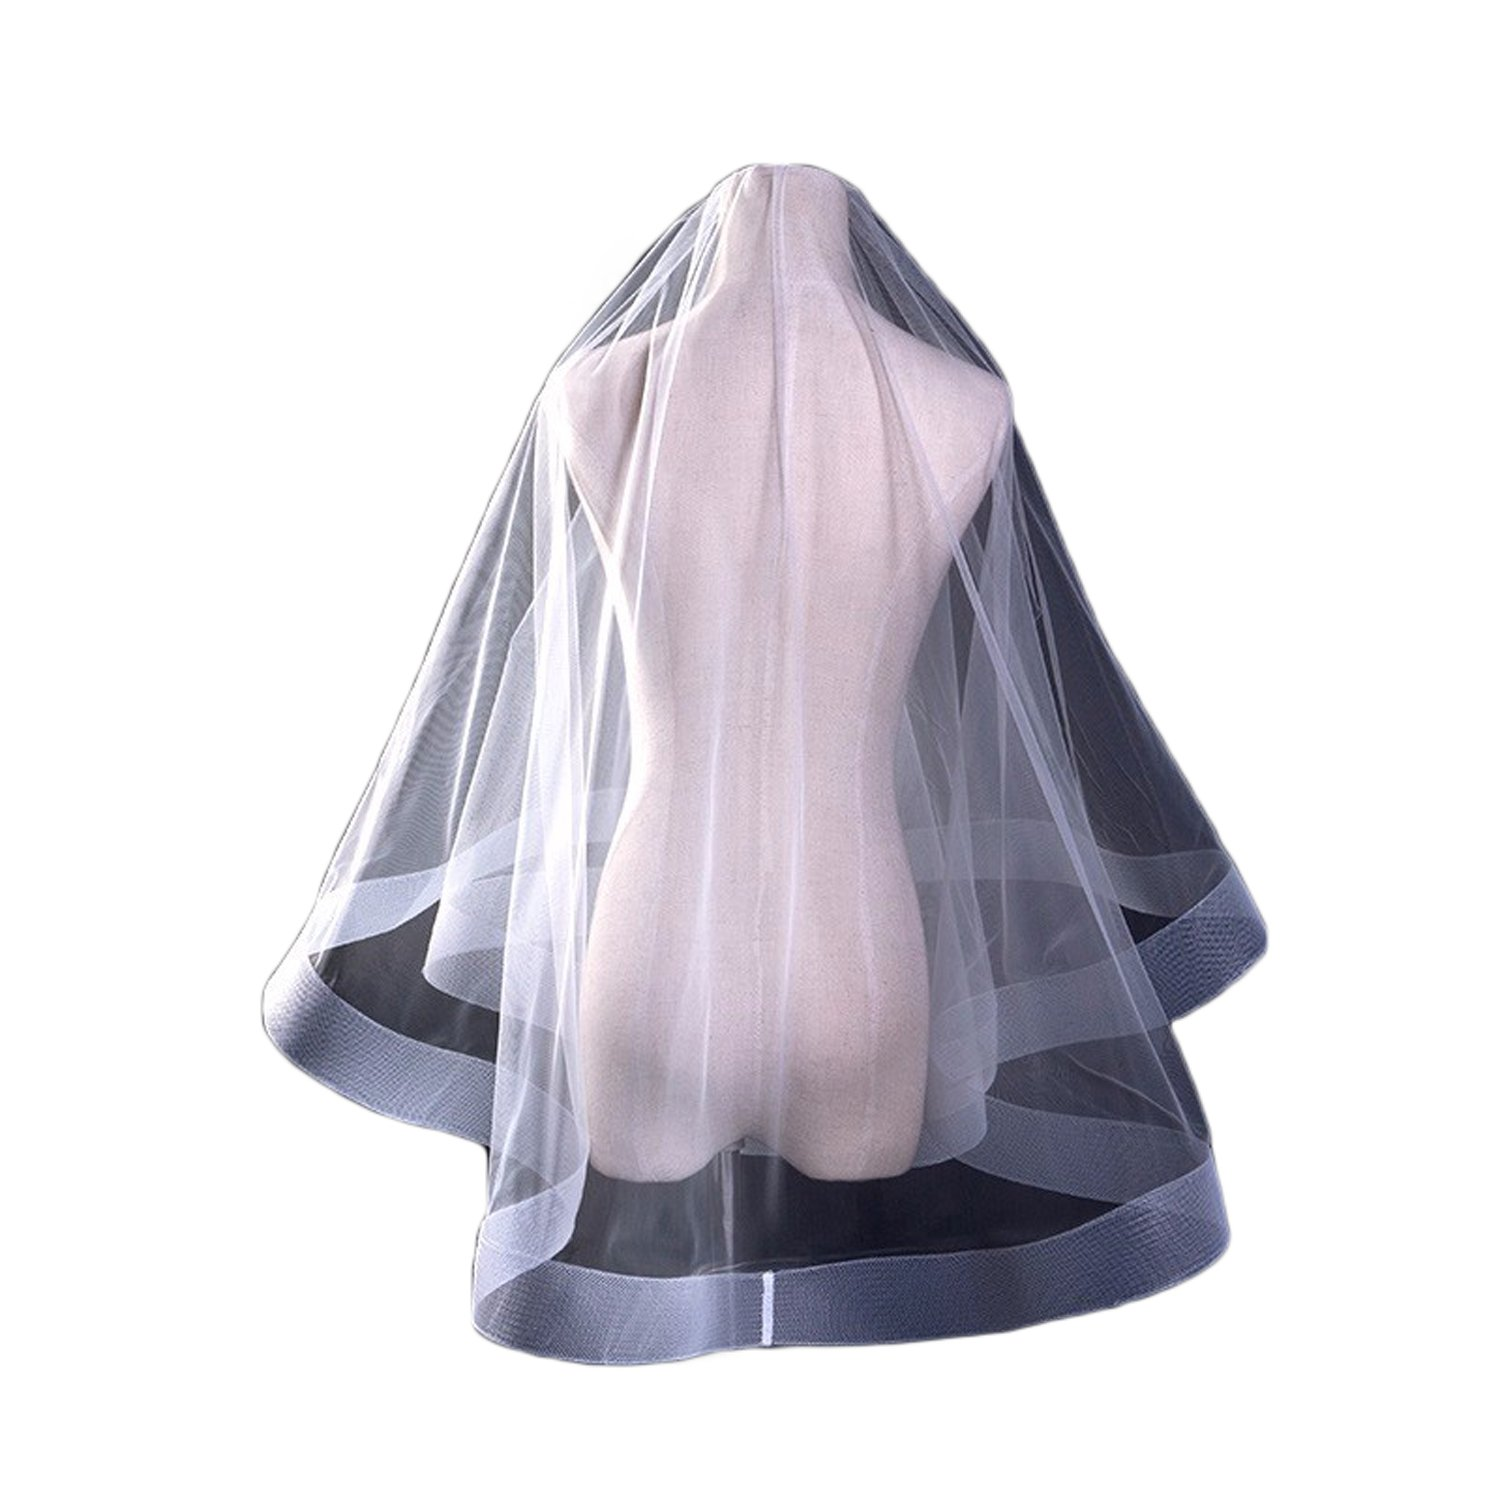 Ruolai Horsehair Short Two-Tier Wedding Veil Elegant Bridal Veil ivory 2 in